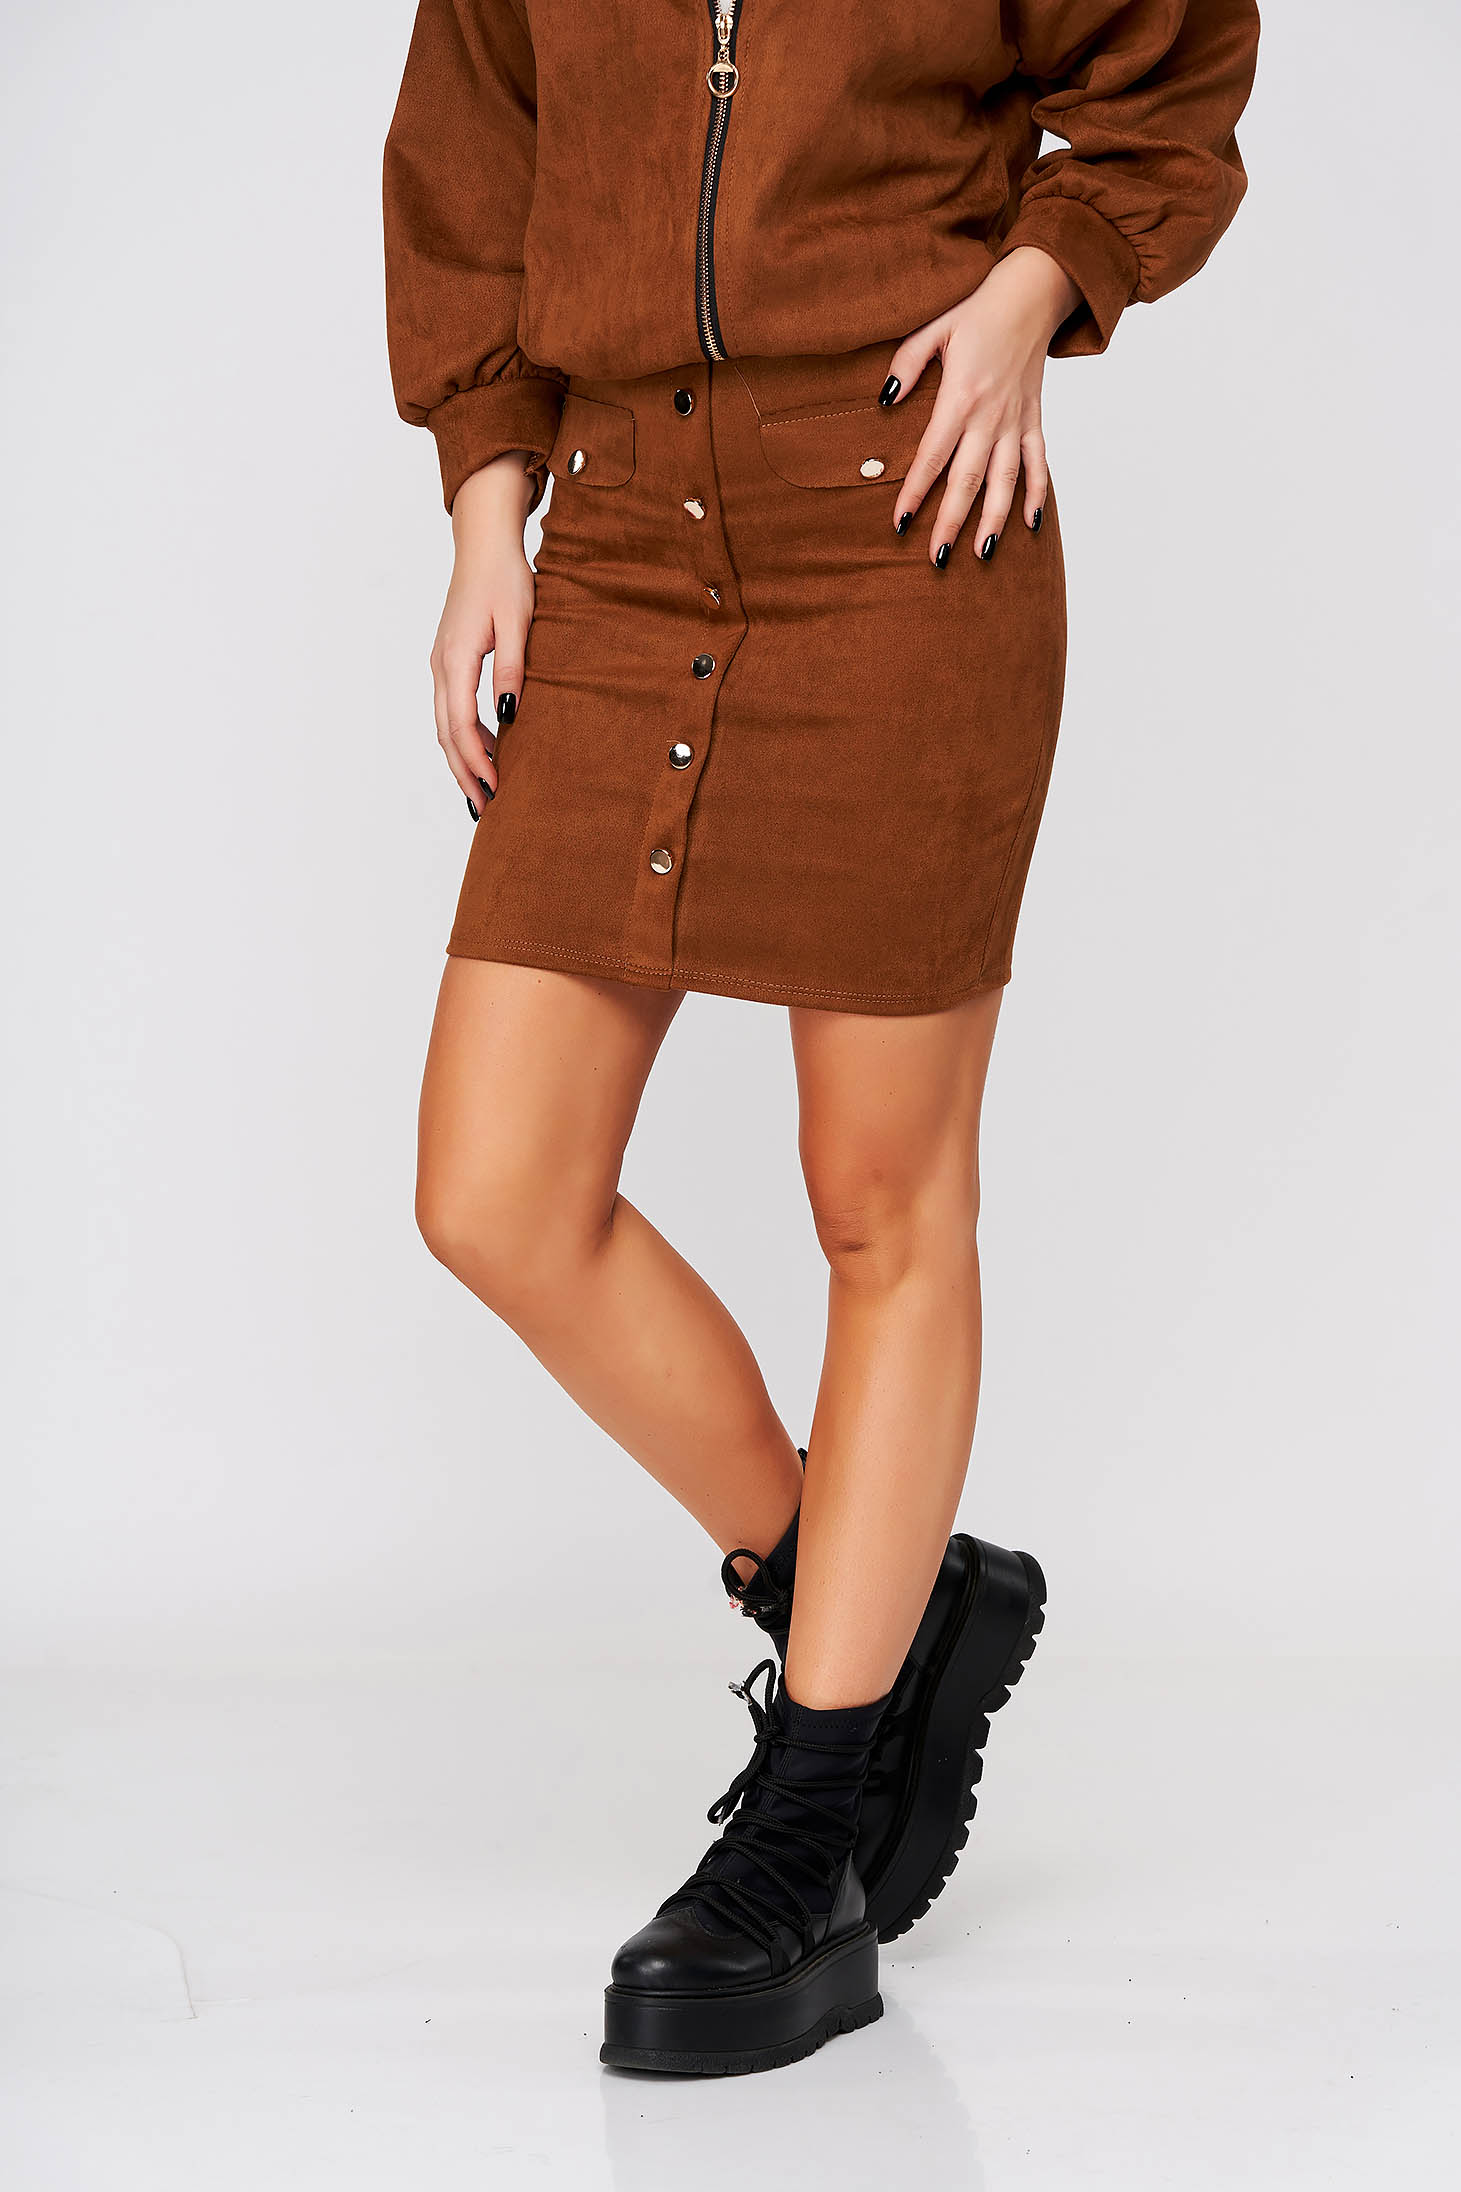 Brown skirt casual short cut medium waist elastic waist with button accessories